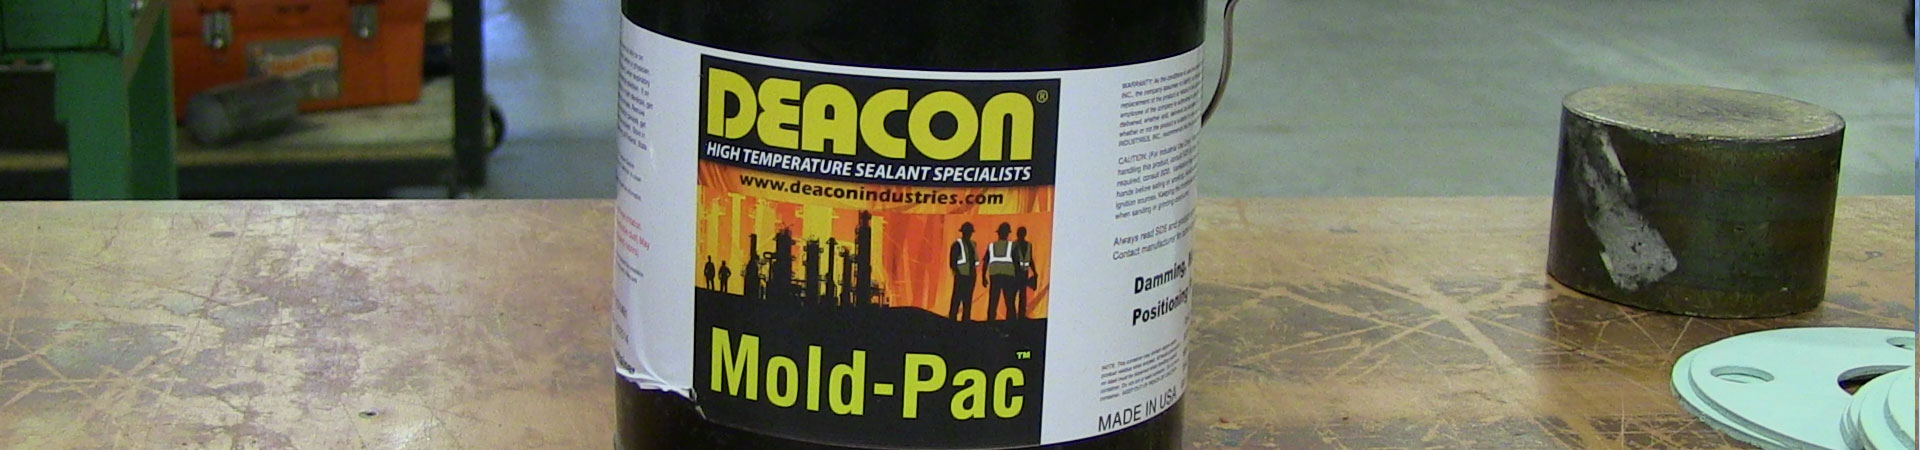 Deacon Mold-Pac Damming Putty